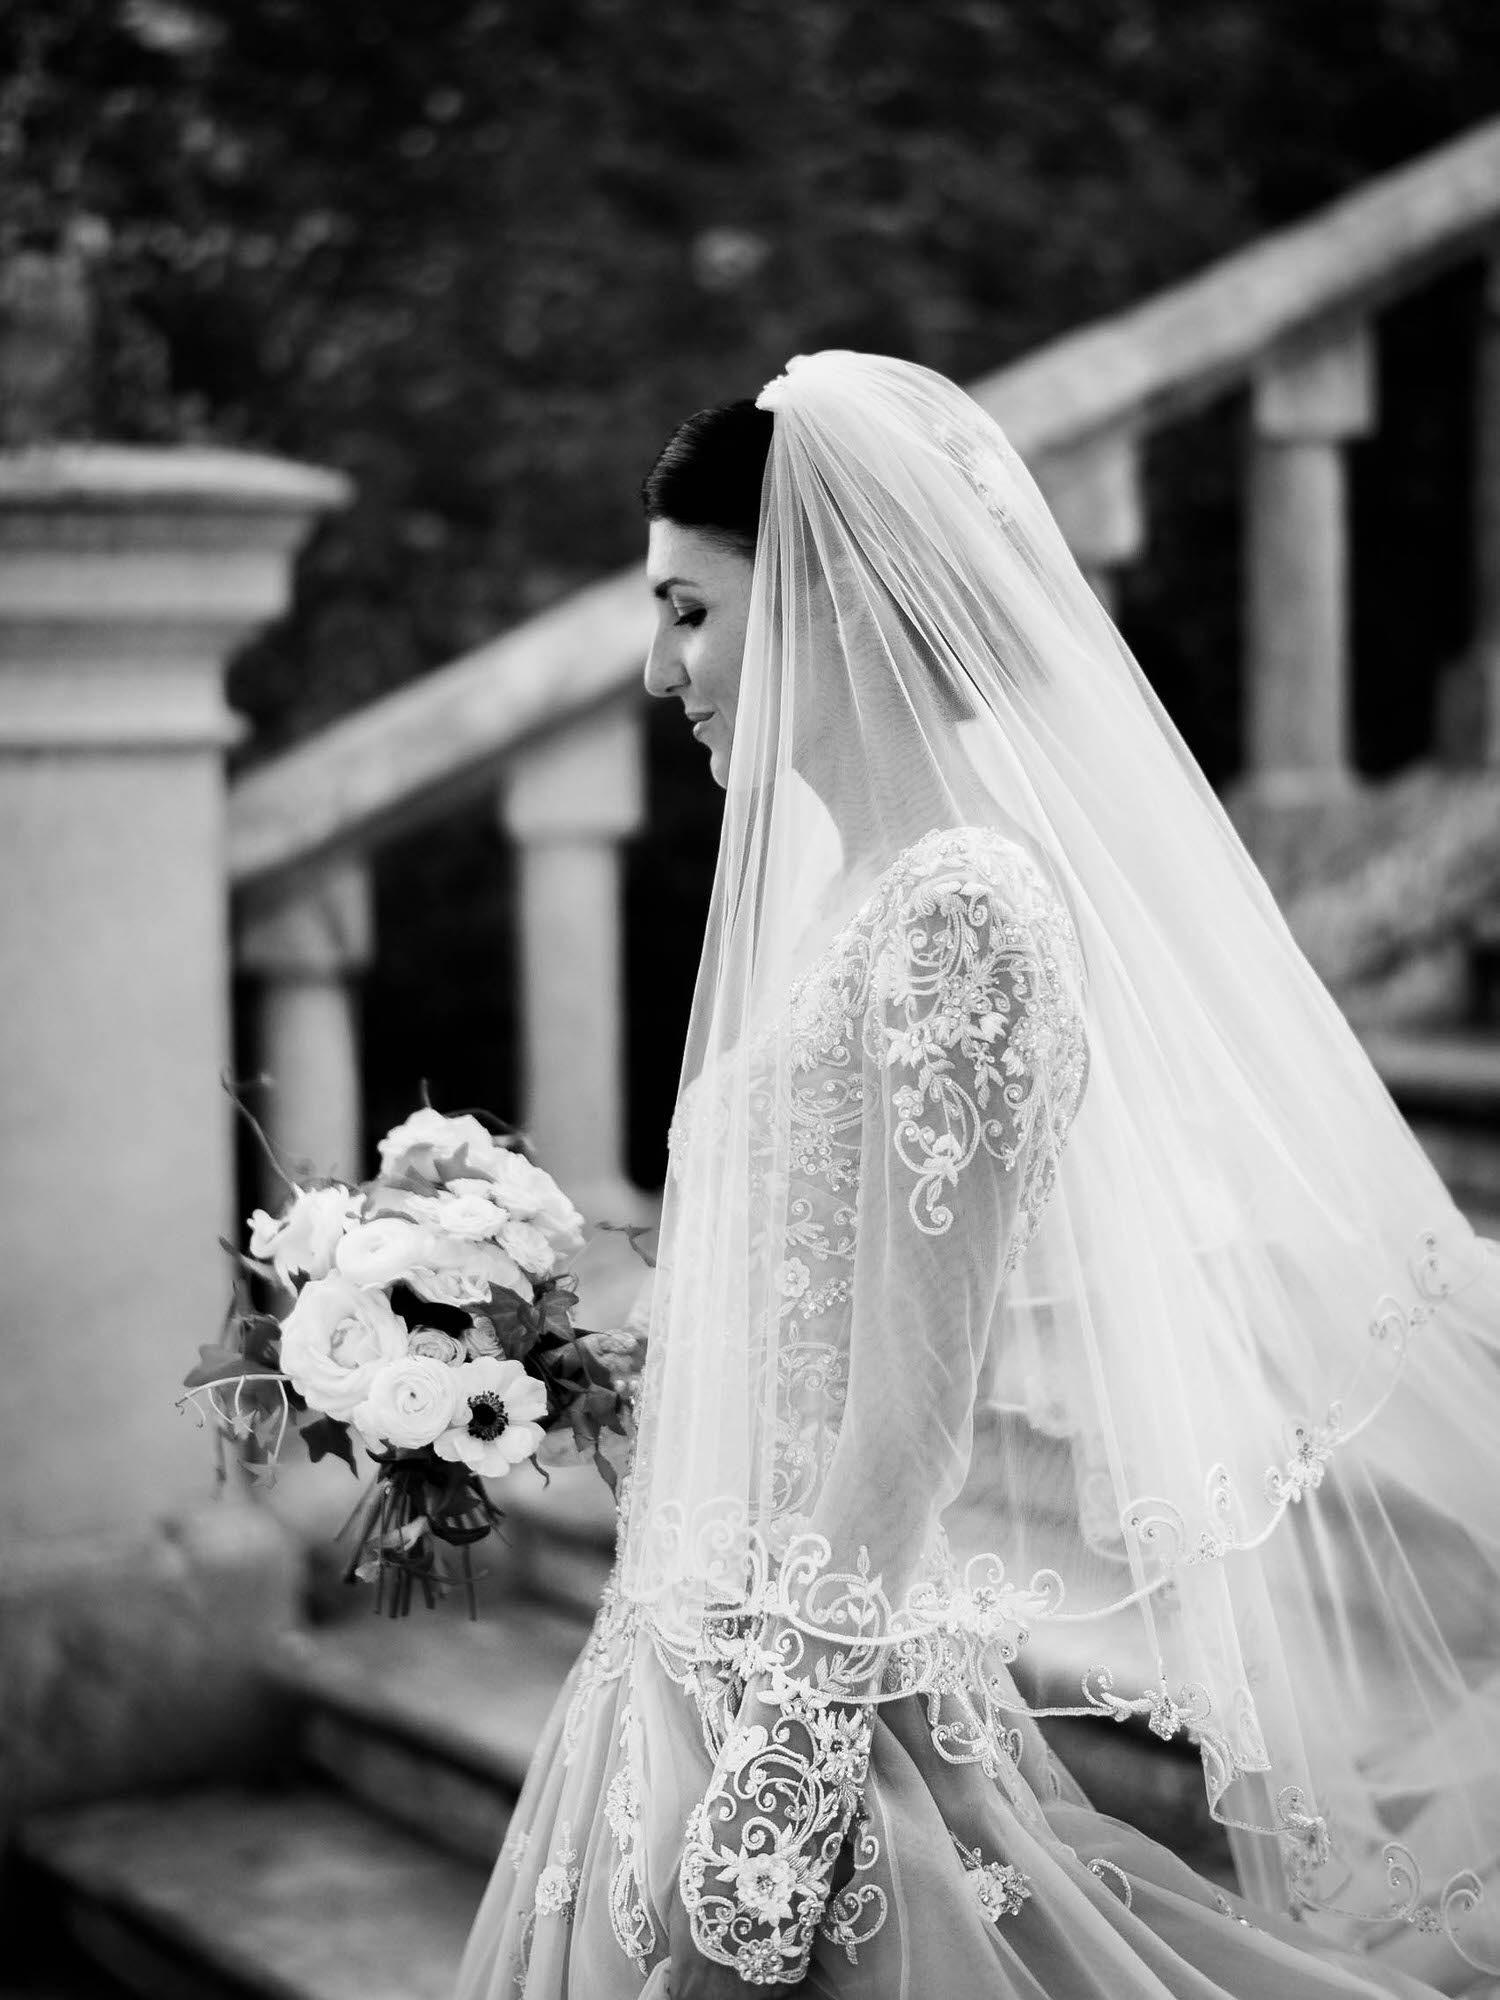 Black and white profile portrait of a gently smiling bride under her veil and holding her bouquet in an Atelier Eme gown at a castle wedding in Italy. Fine art wedding photography by luxury wedding photographer Francesco Bognin